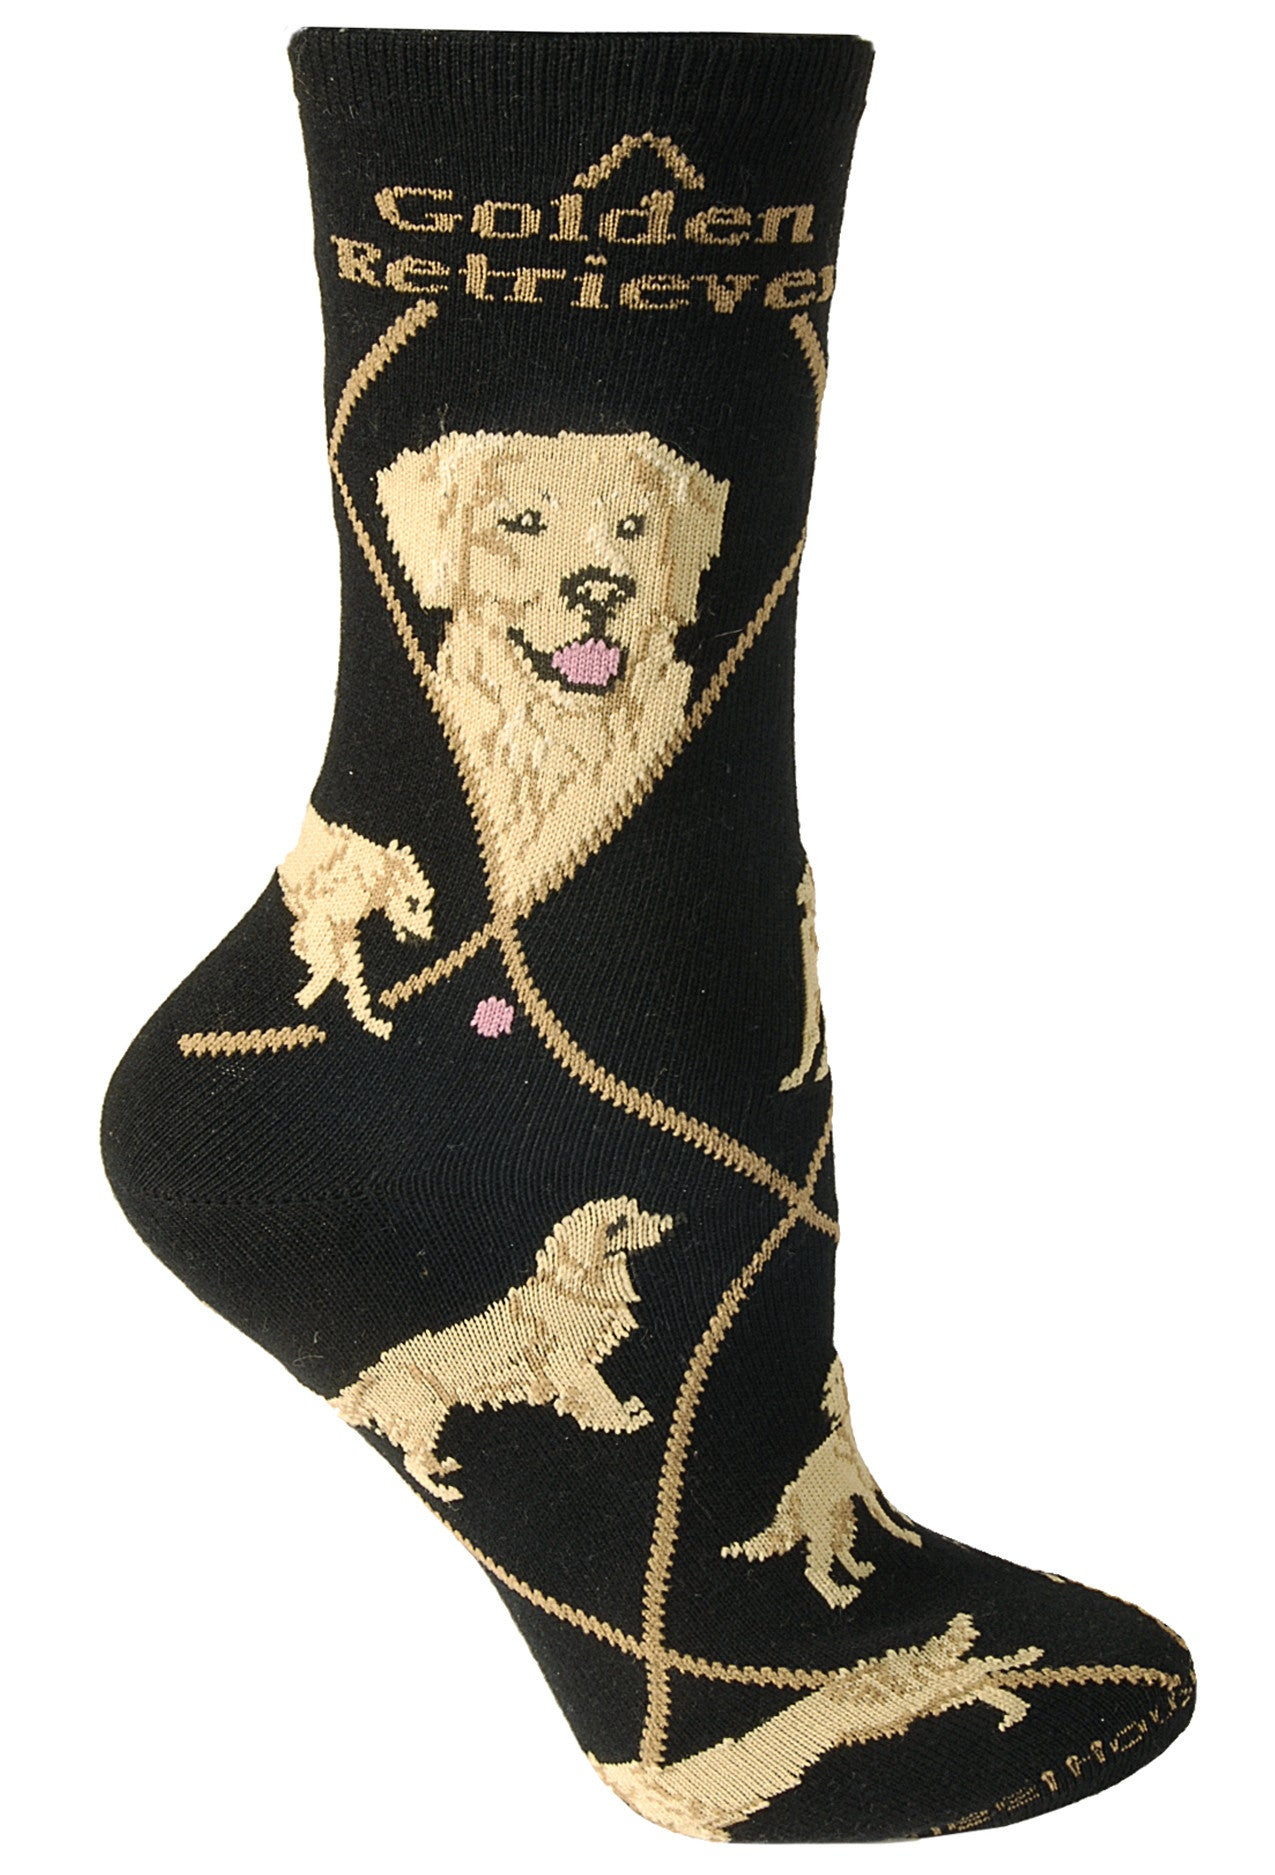 Golden Retriever on Black Socks